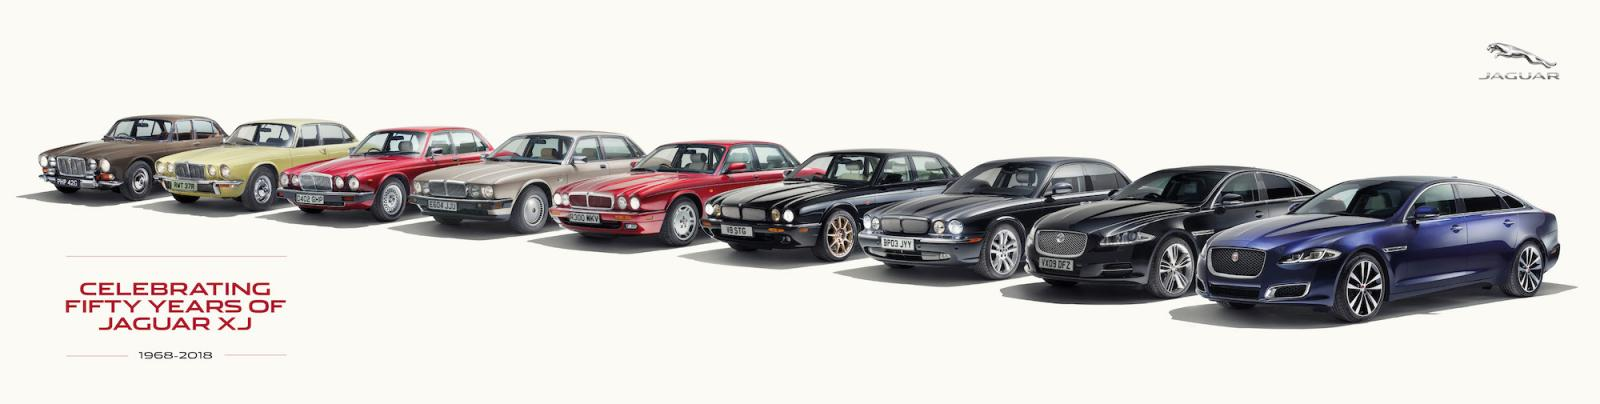 jaguar-xj-50th-anniversaire-1968-2018-1